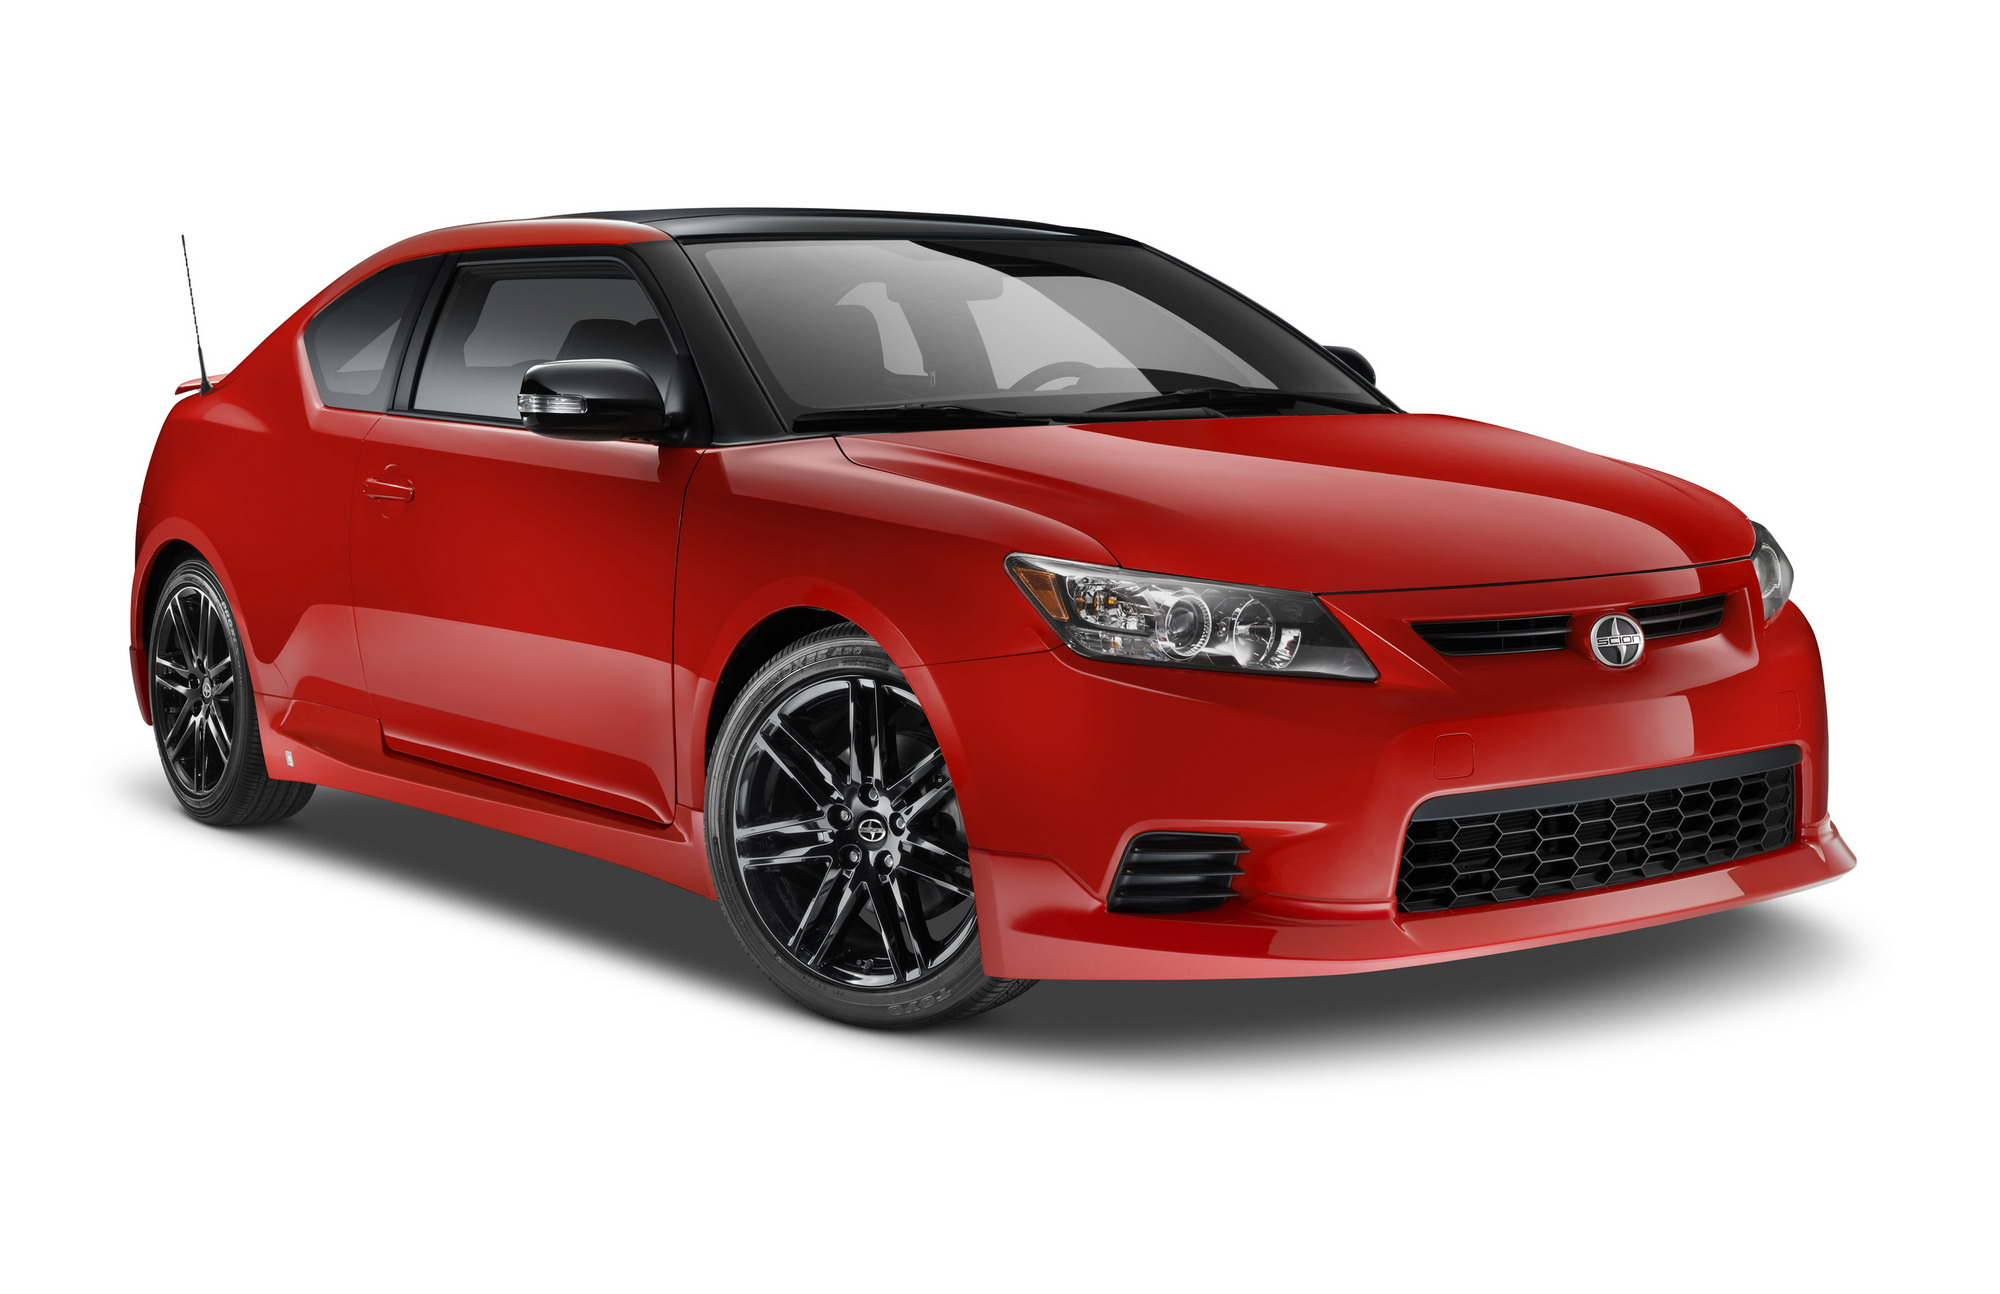 2013 scion tc release series 80 manual transmission. Black Bedroom Furniture Sets. Home Design Ideas